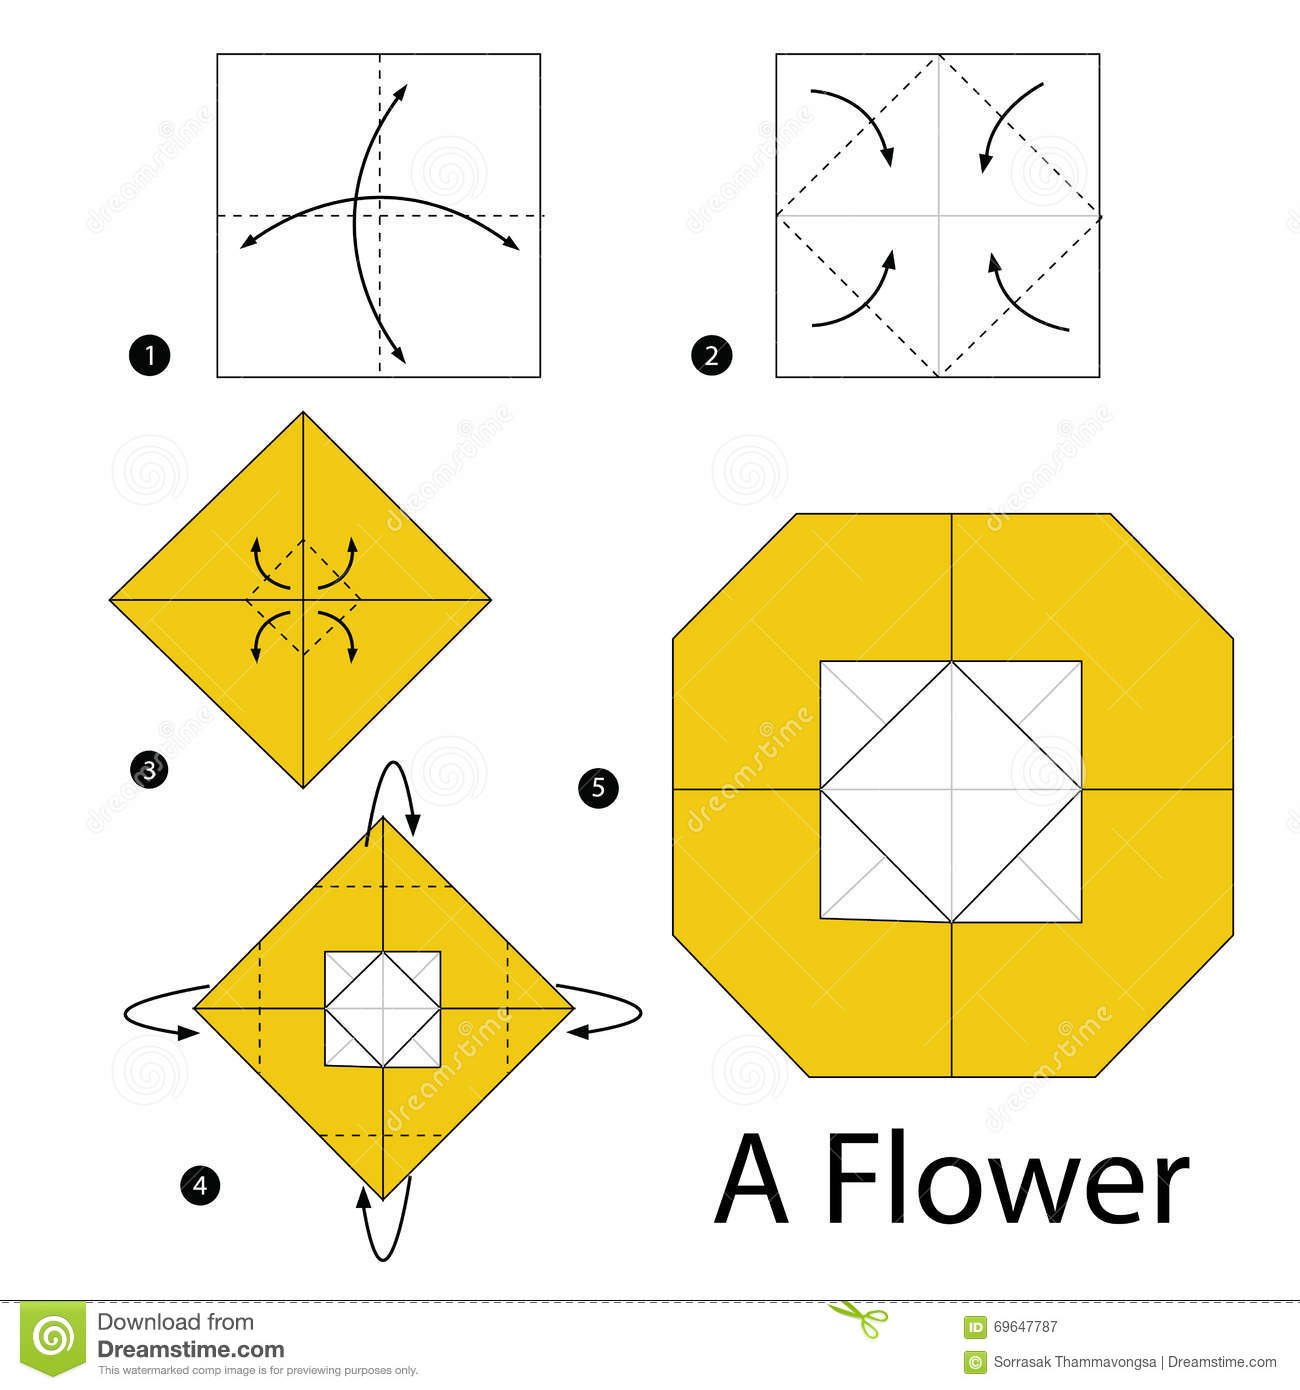 Step by step instructions how to make origami a flower stock vector download step by step instructions how to make origami a flower stock vector illustration mightylinksfo